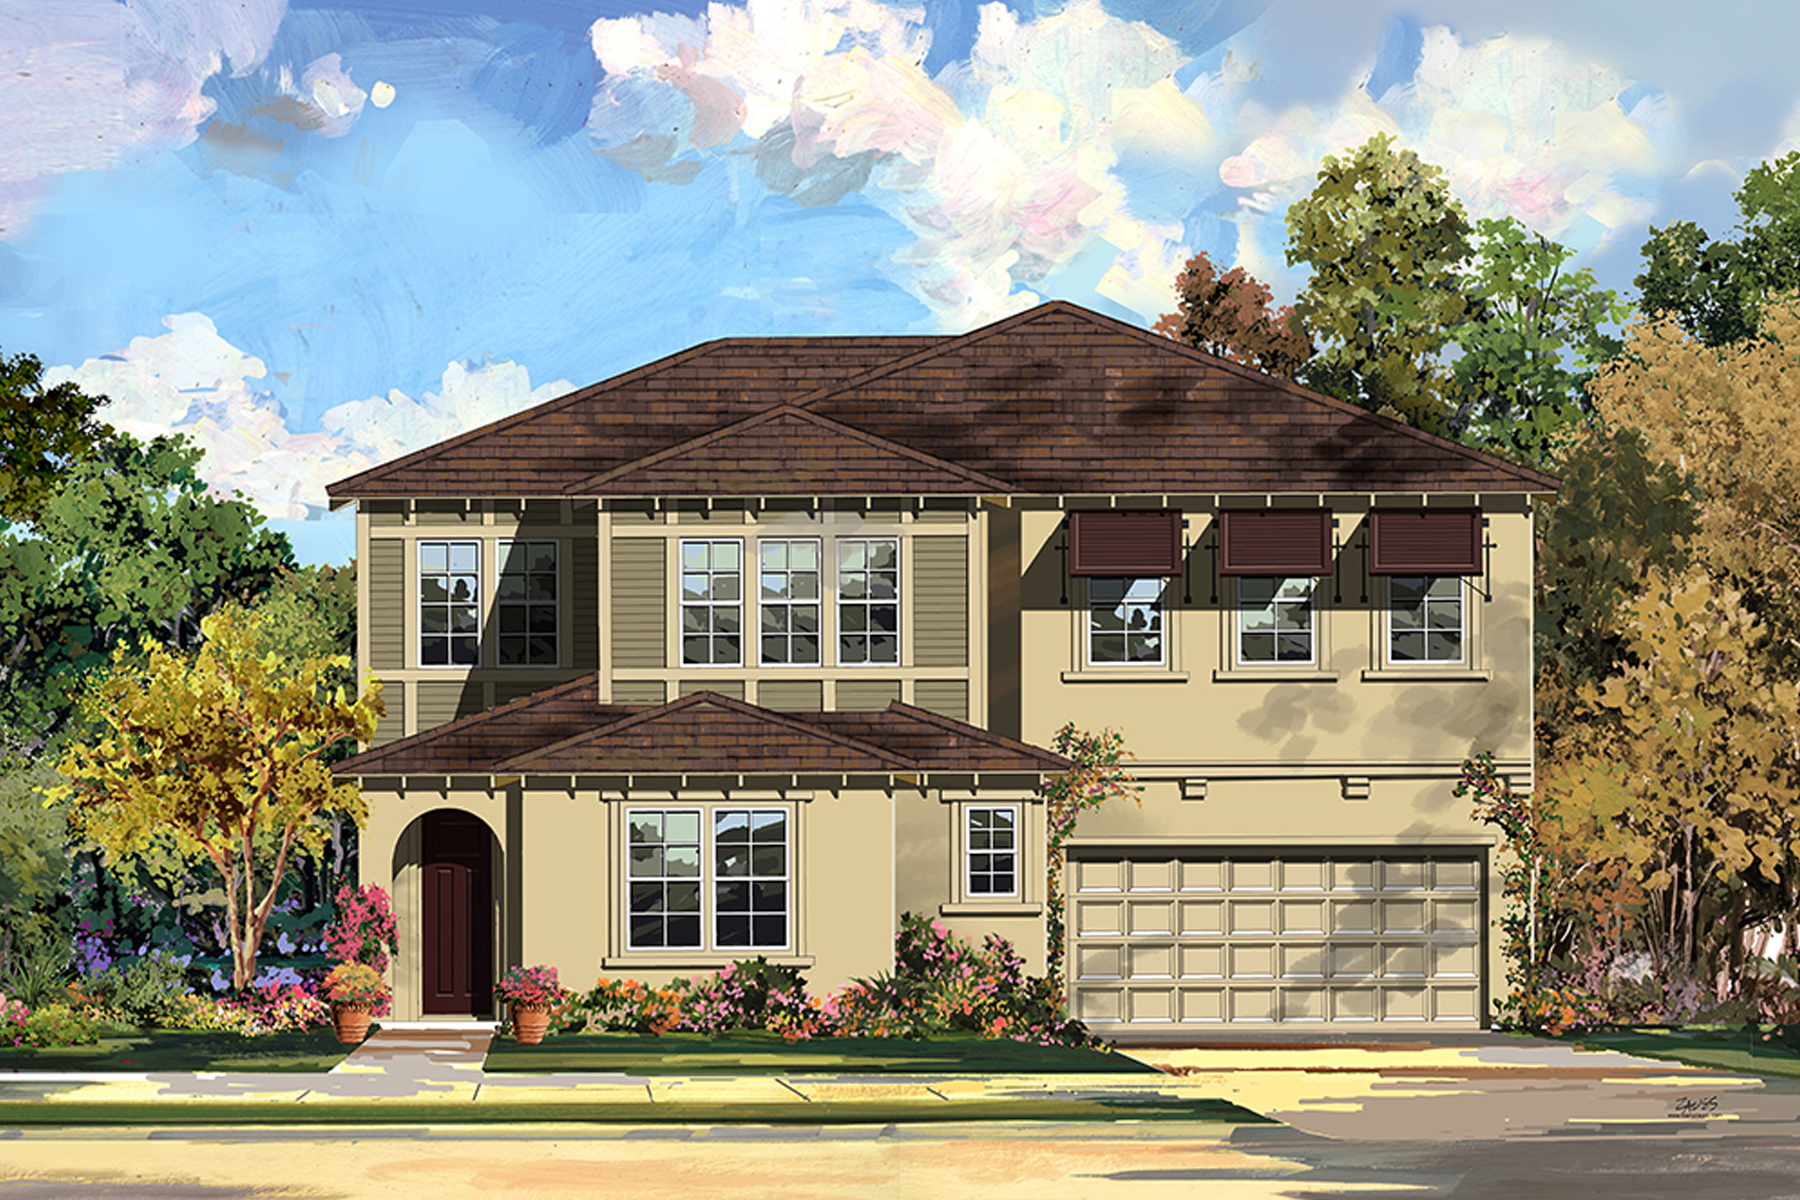 christopher homes, wisteria, new azusa homes, azusa homes, rosedale